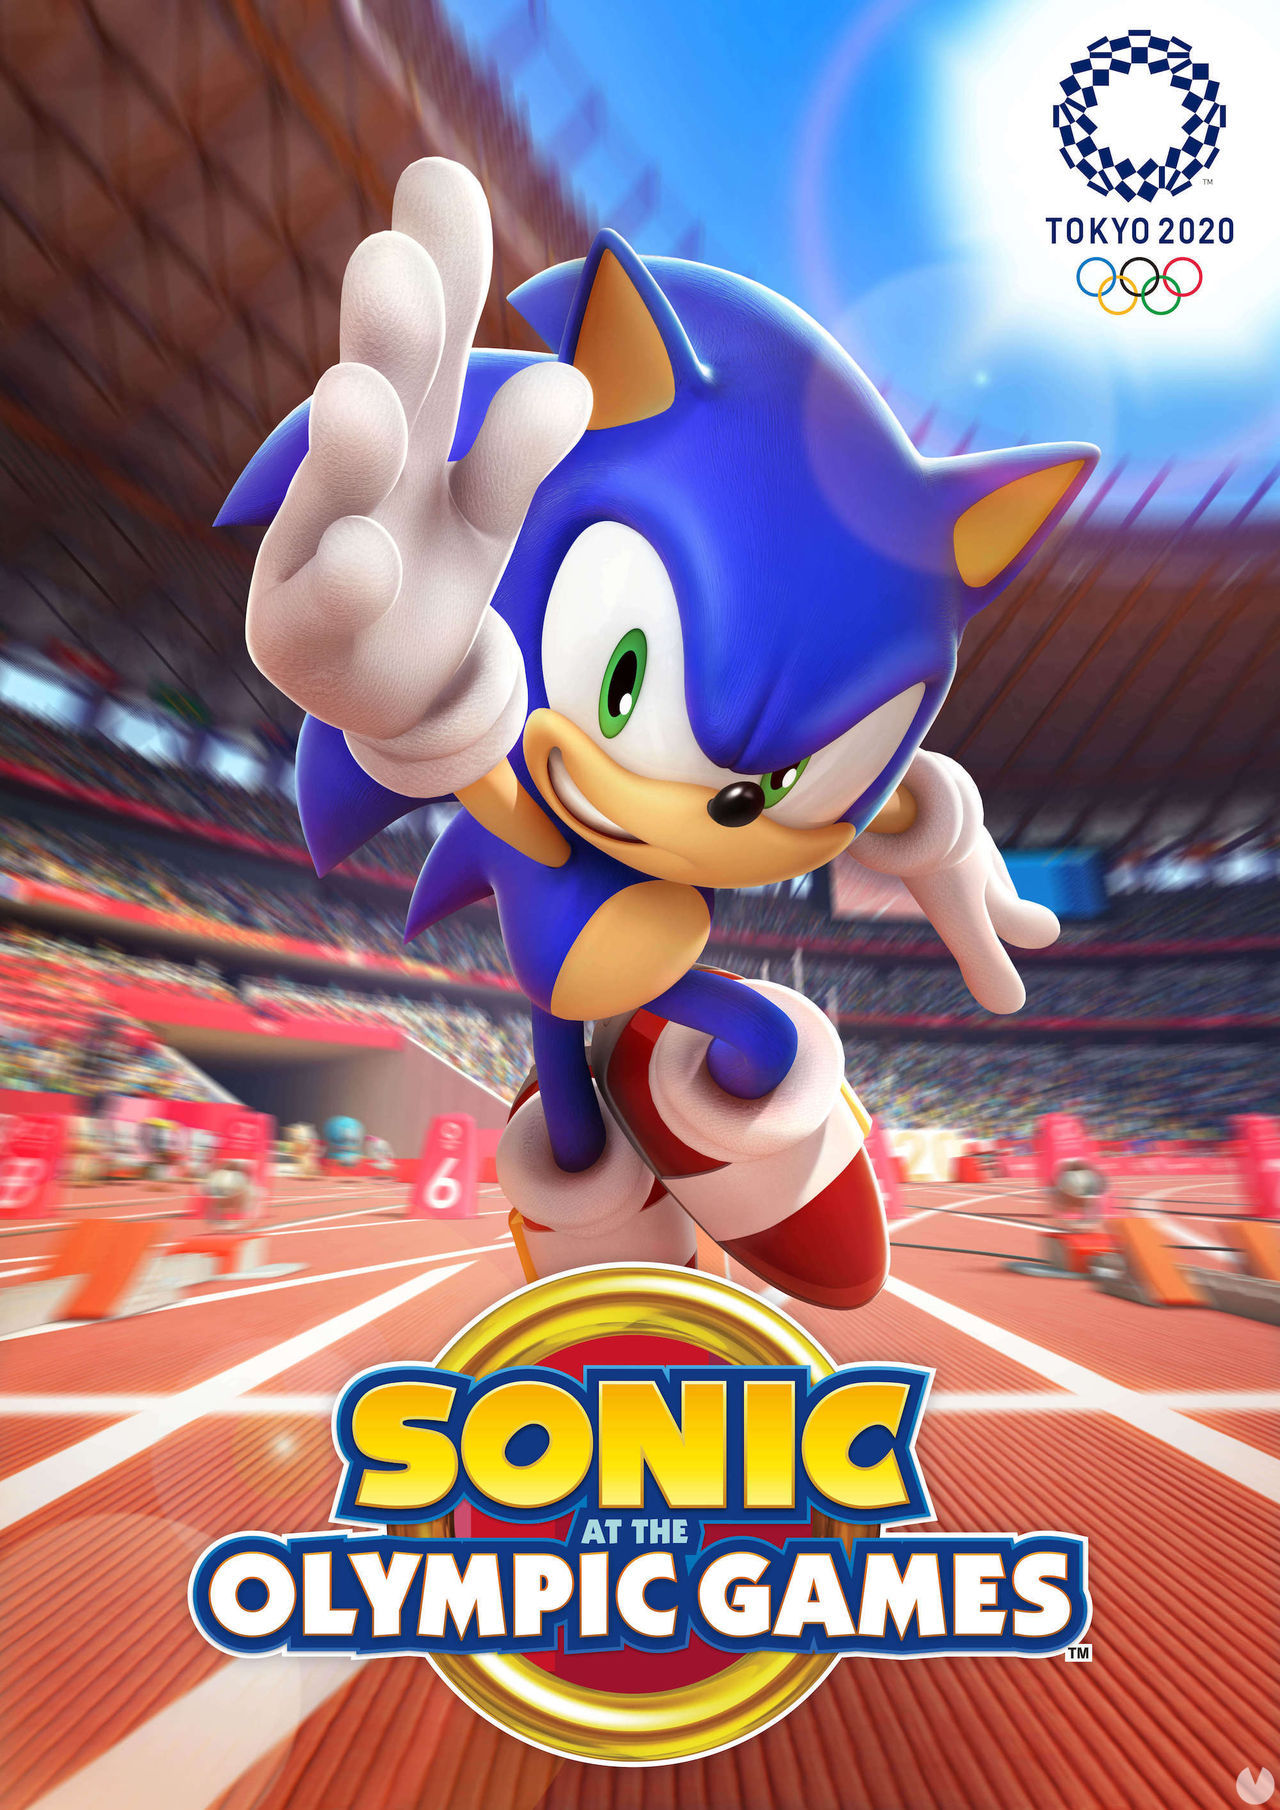 Tokyo 2020 Sonic at the Olympic Games shows us its first teaser trailer on mobile